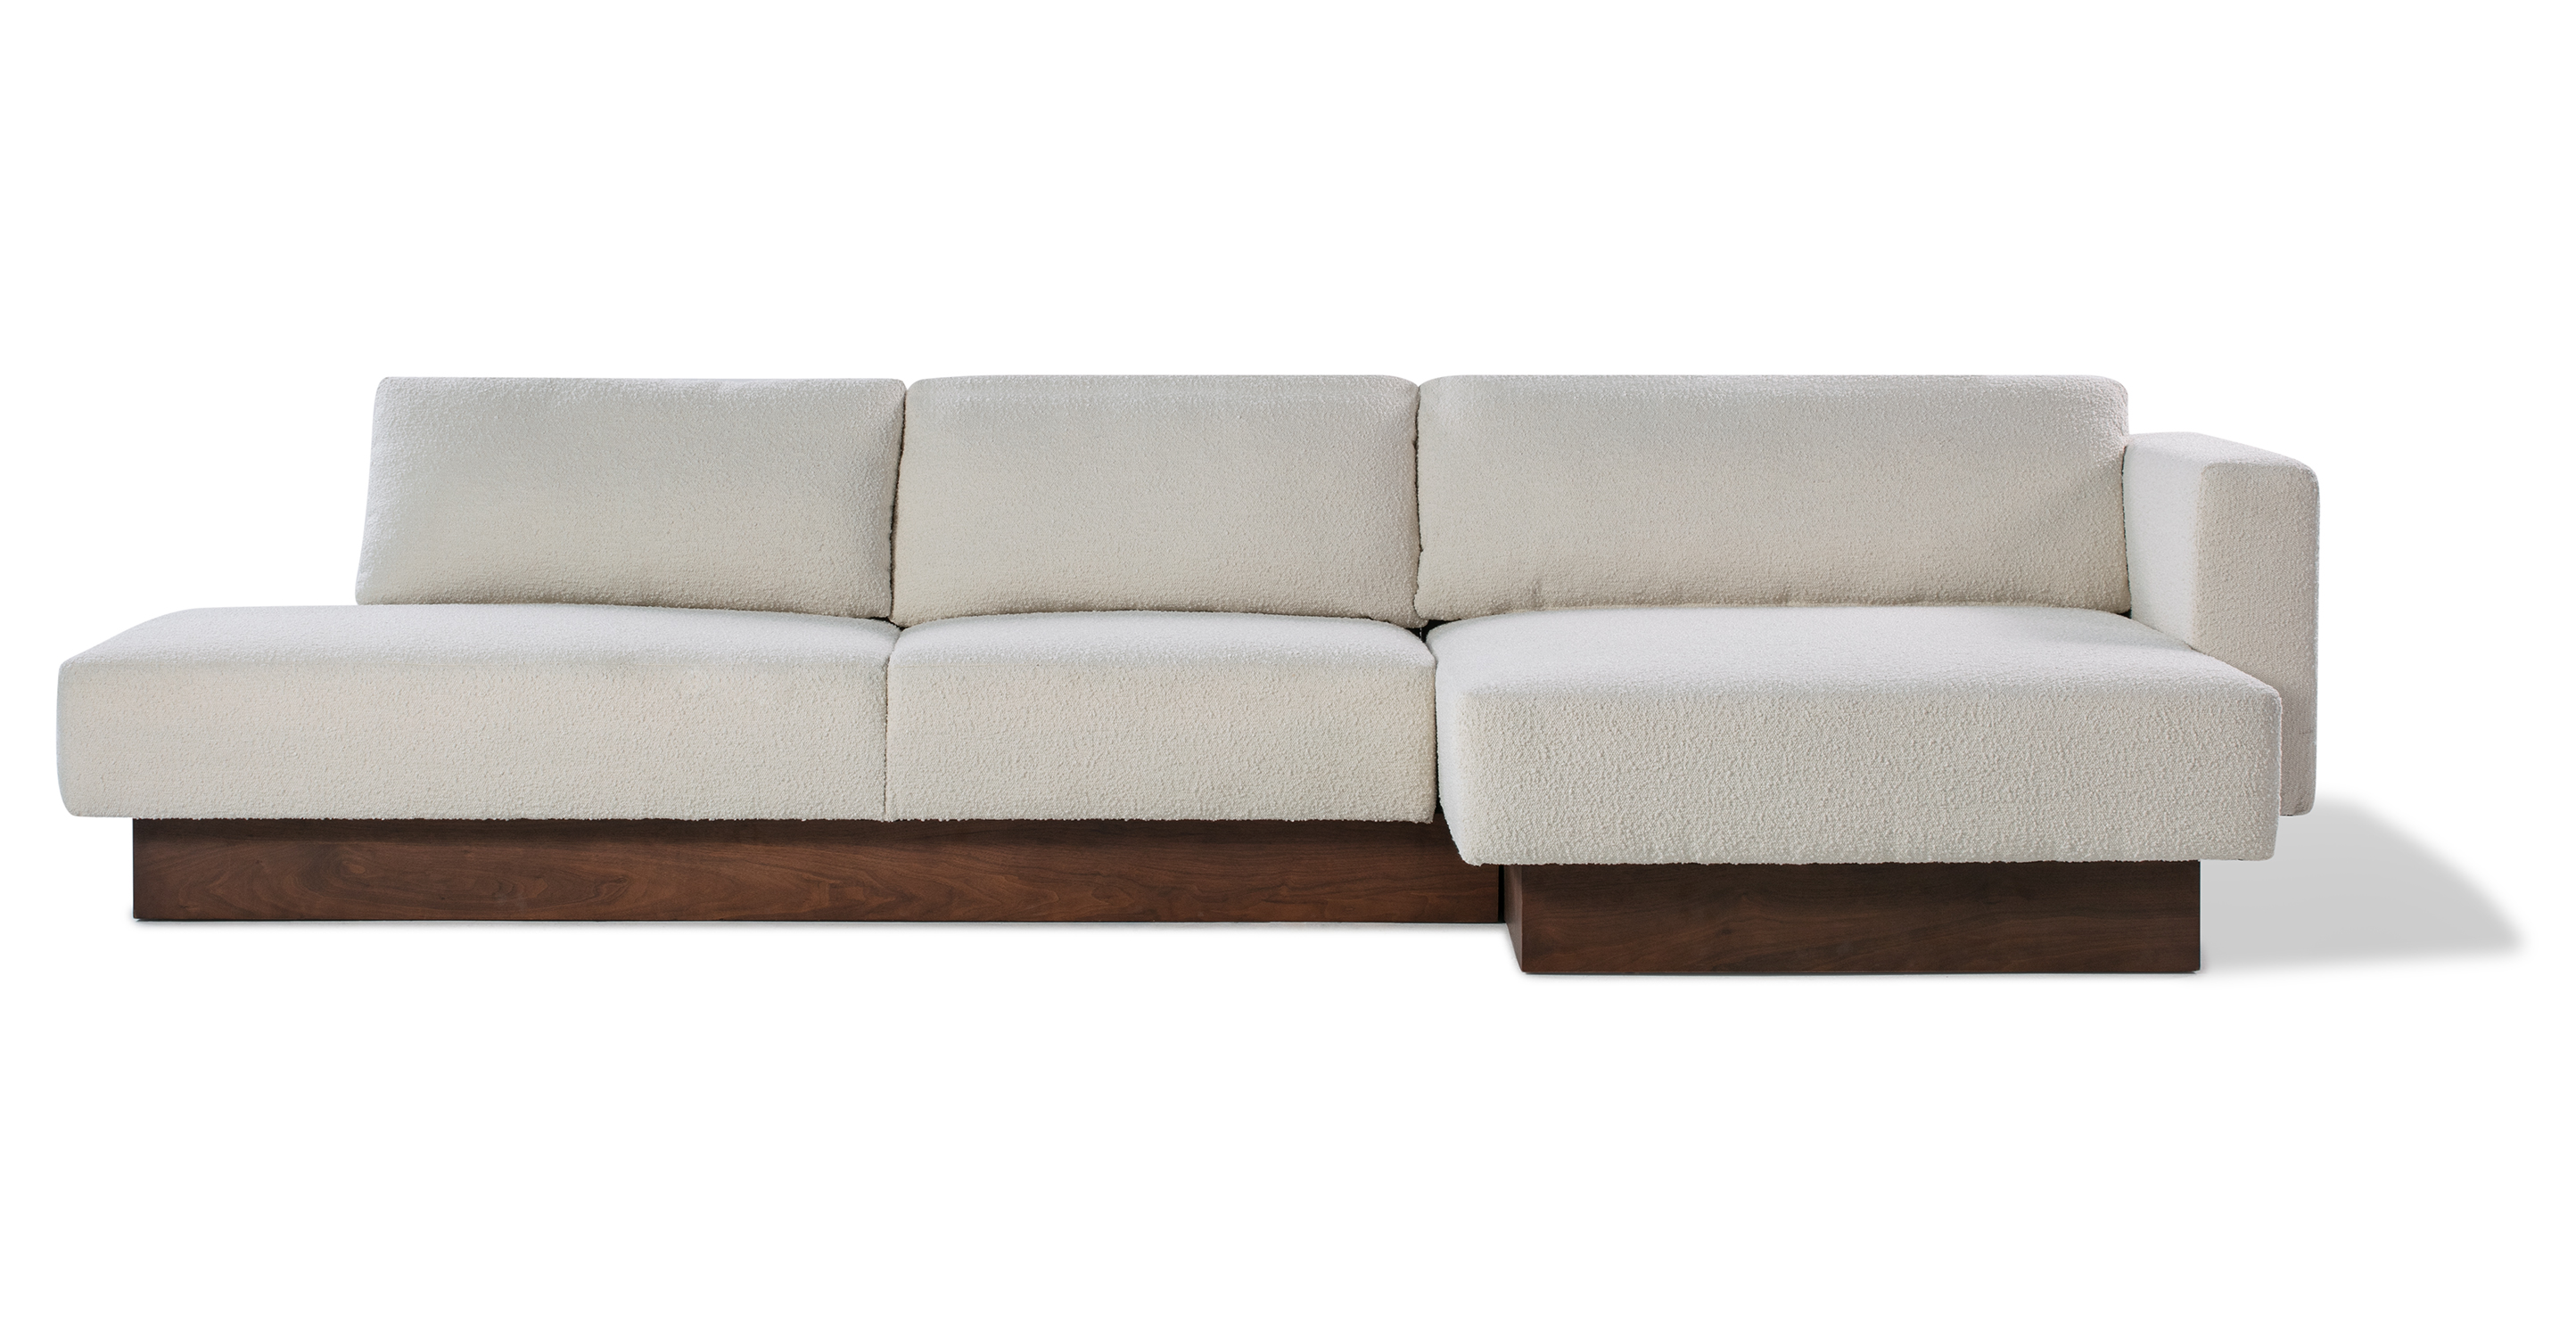 "Brady 128"" Fabric Sofa Sectional Right, Blanc Boucle"